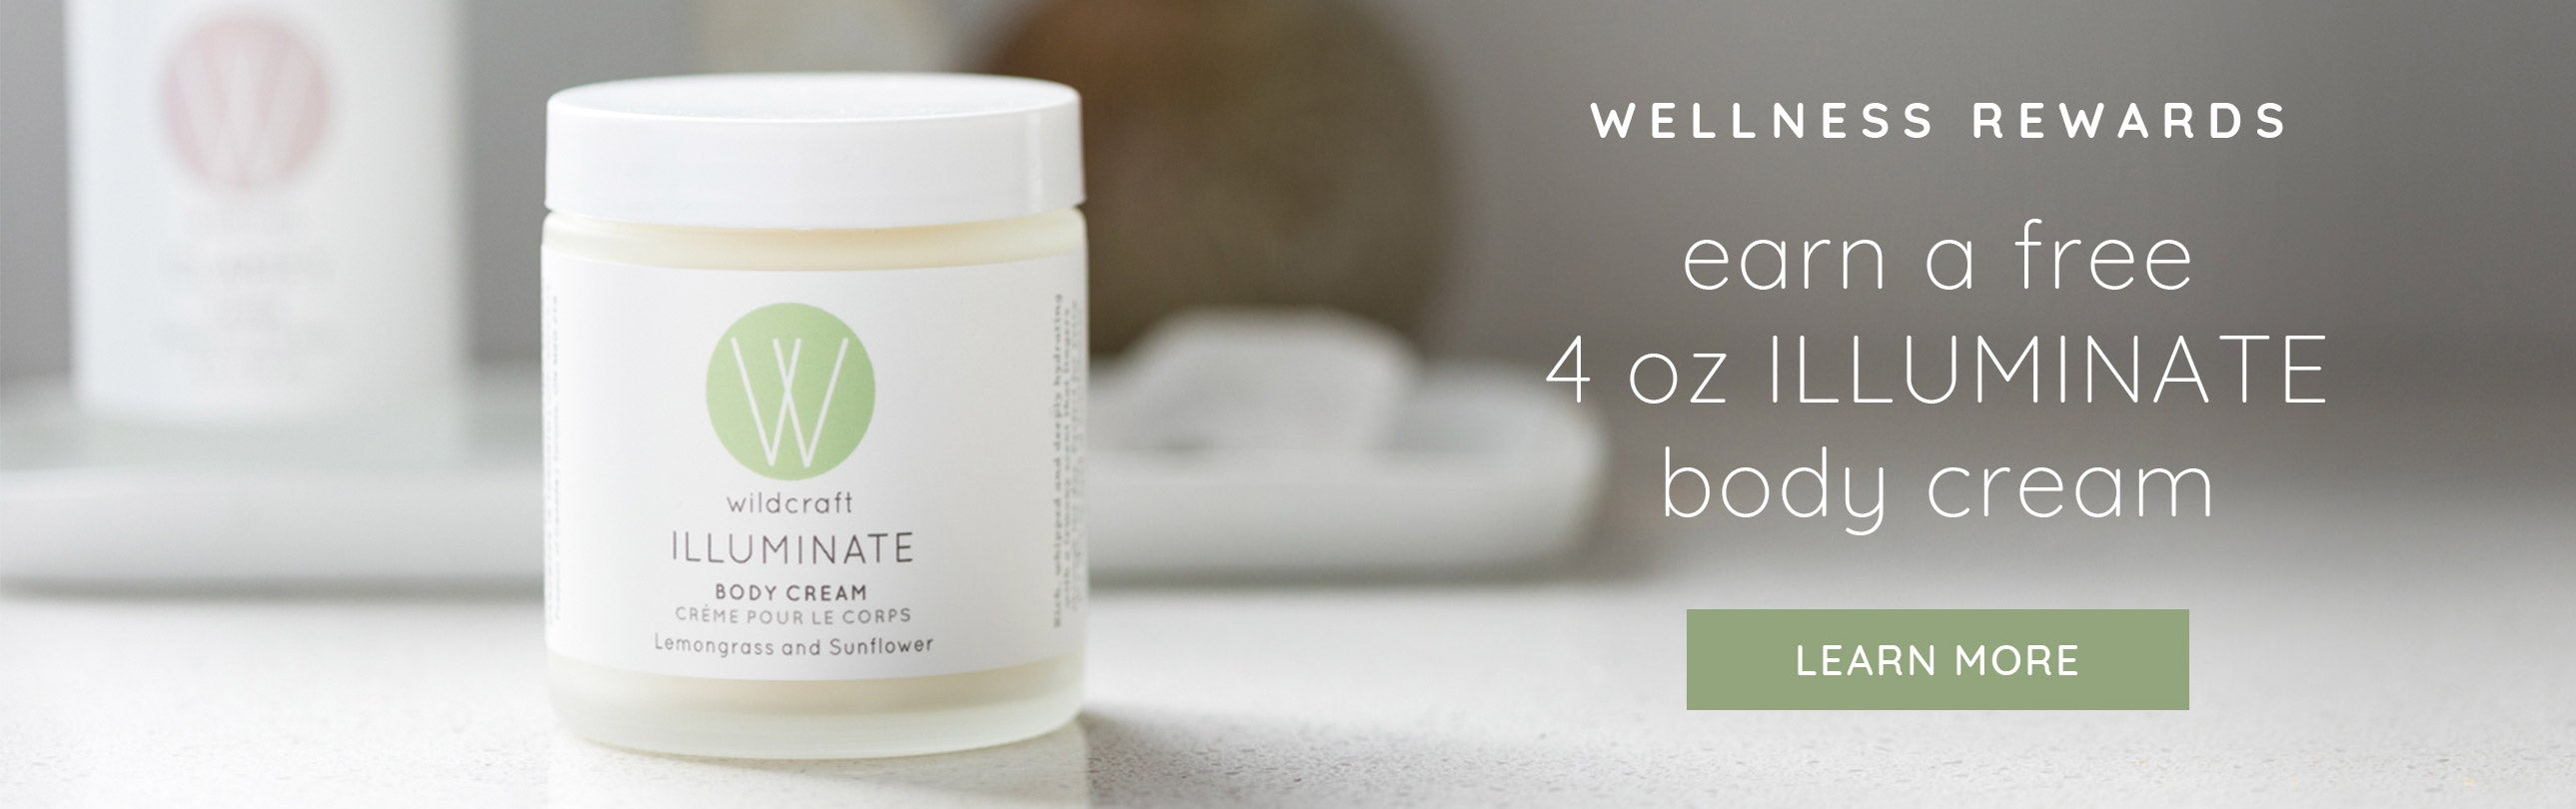 Get a FREE BODY CREAM when you spend $150